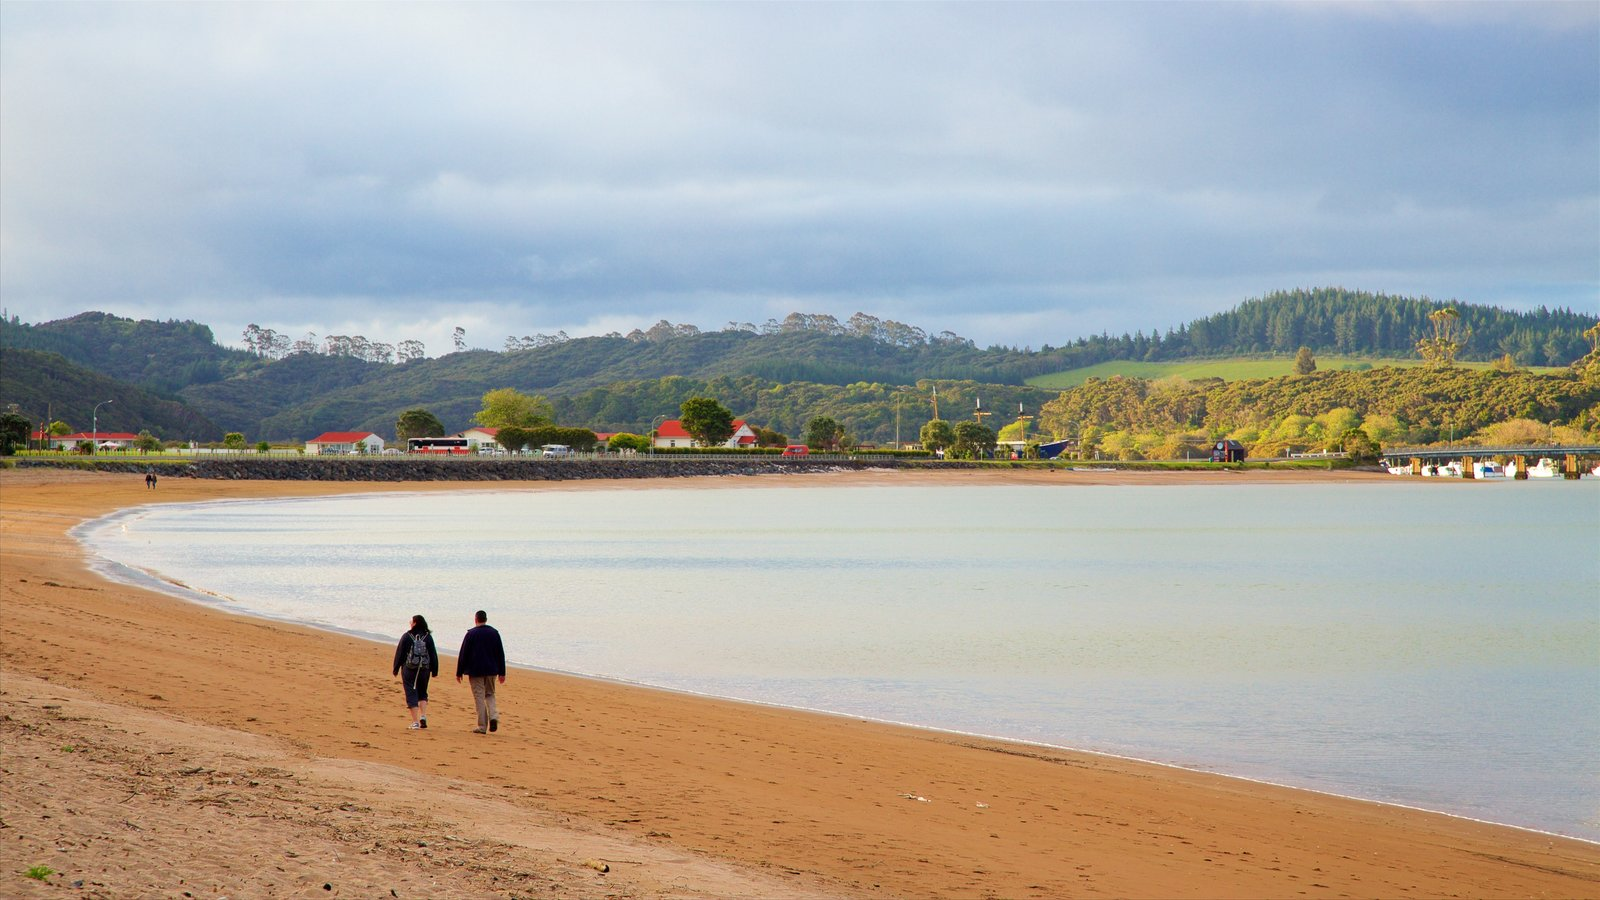 Paihia Beach showing a bay or harbor, a sandy beach and a coastal town